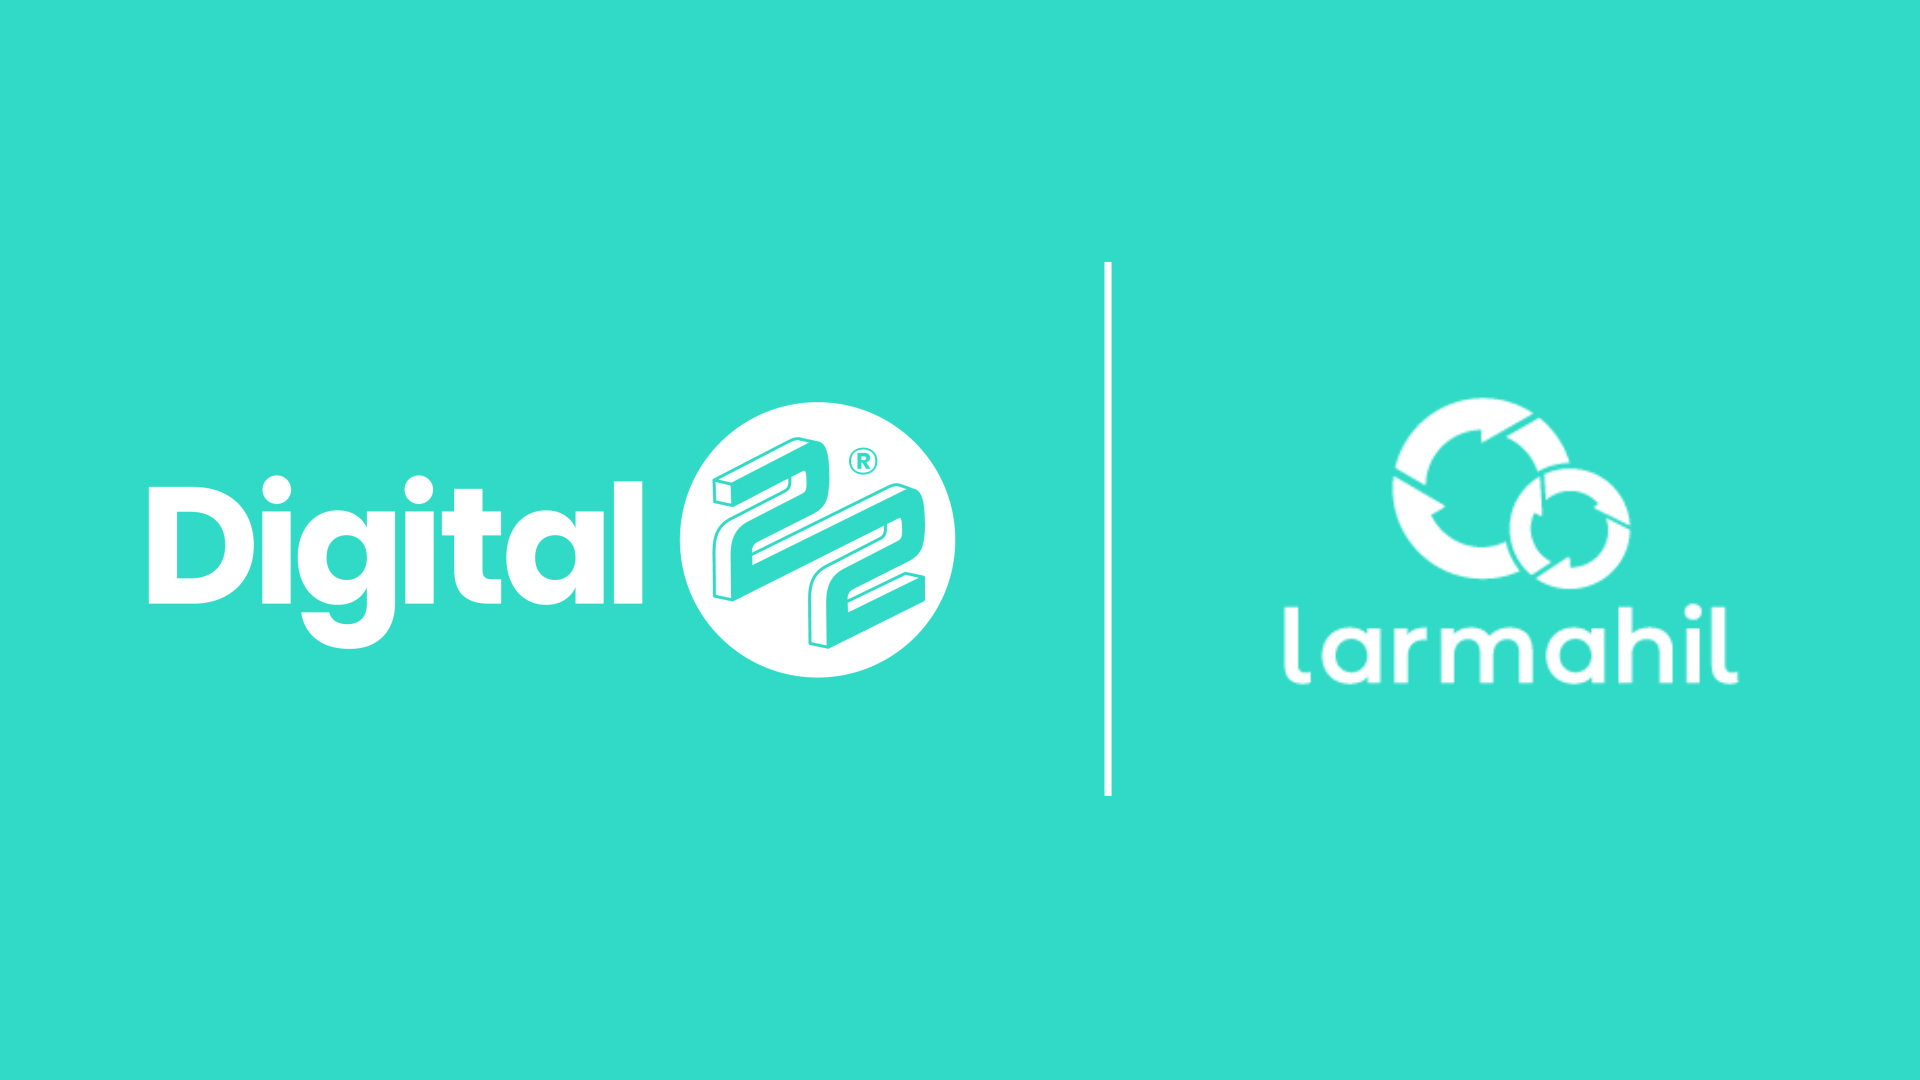 Digital 22 has acquired a Canadian HubSpot agency to extend its expertise